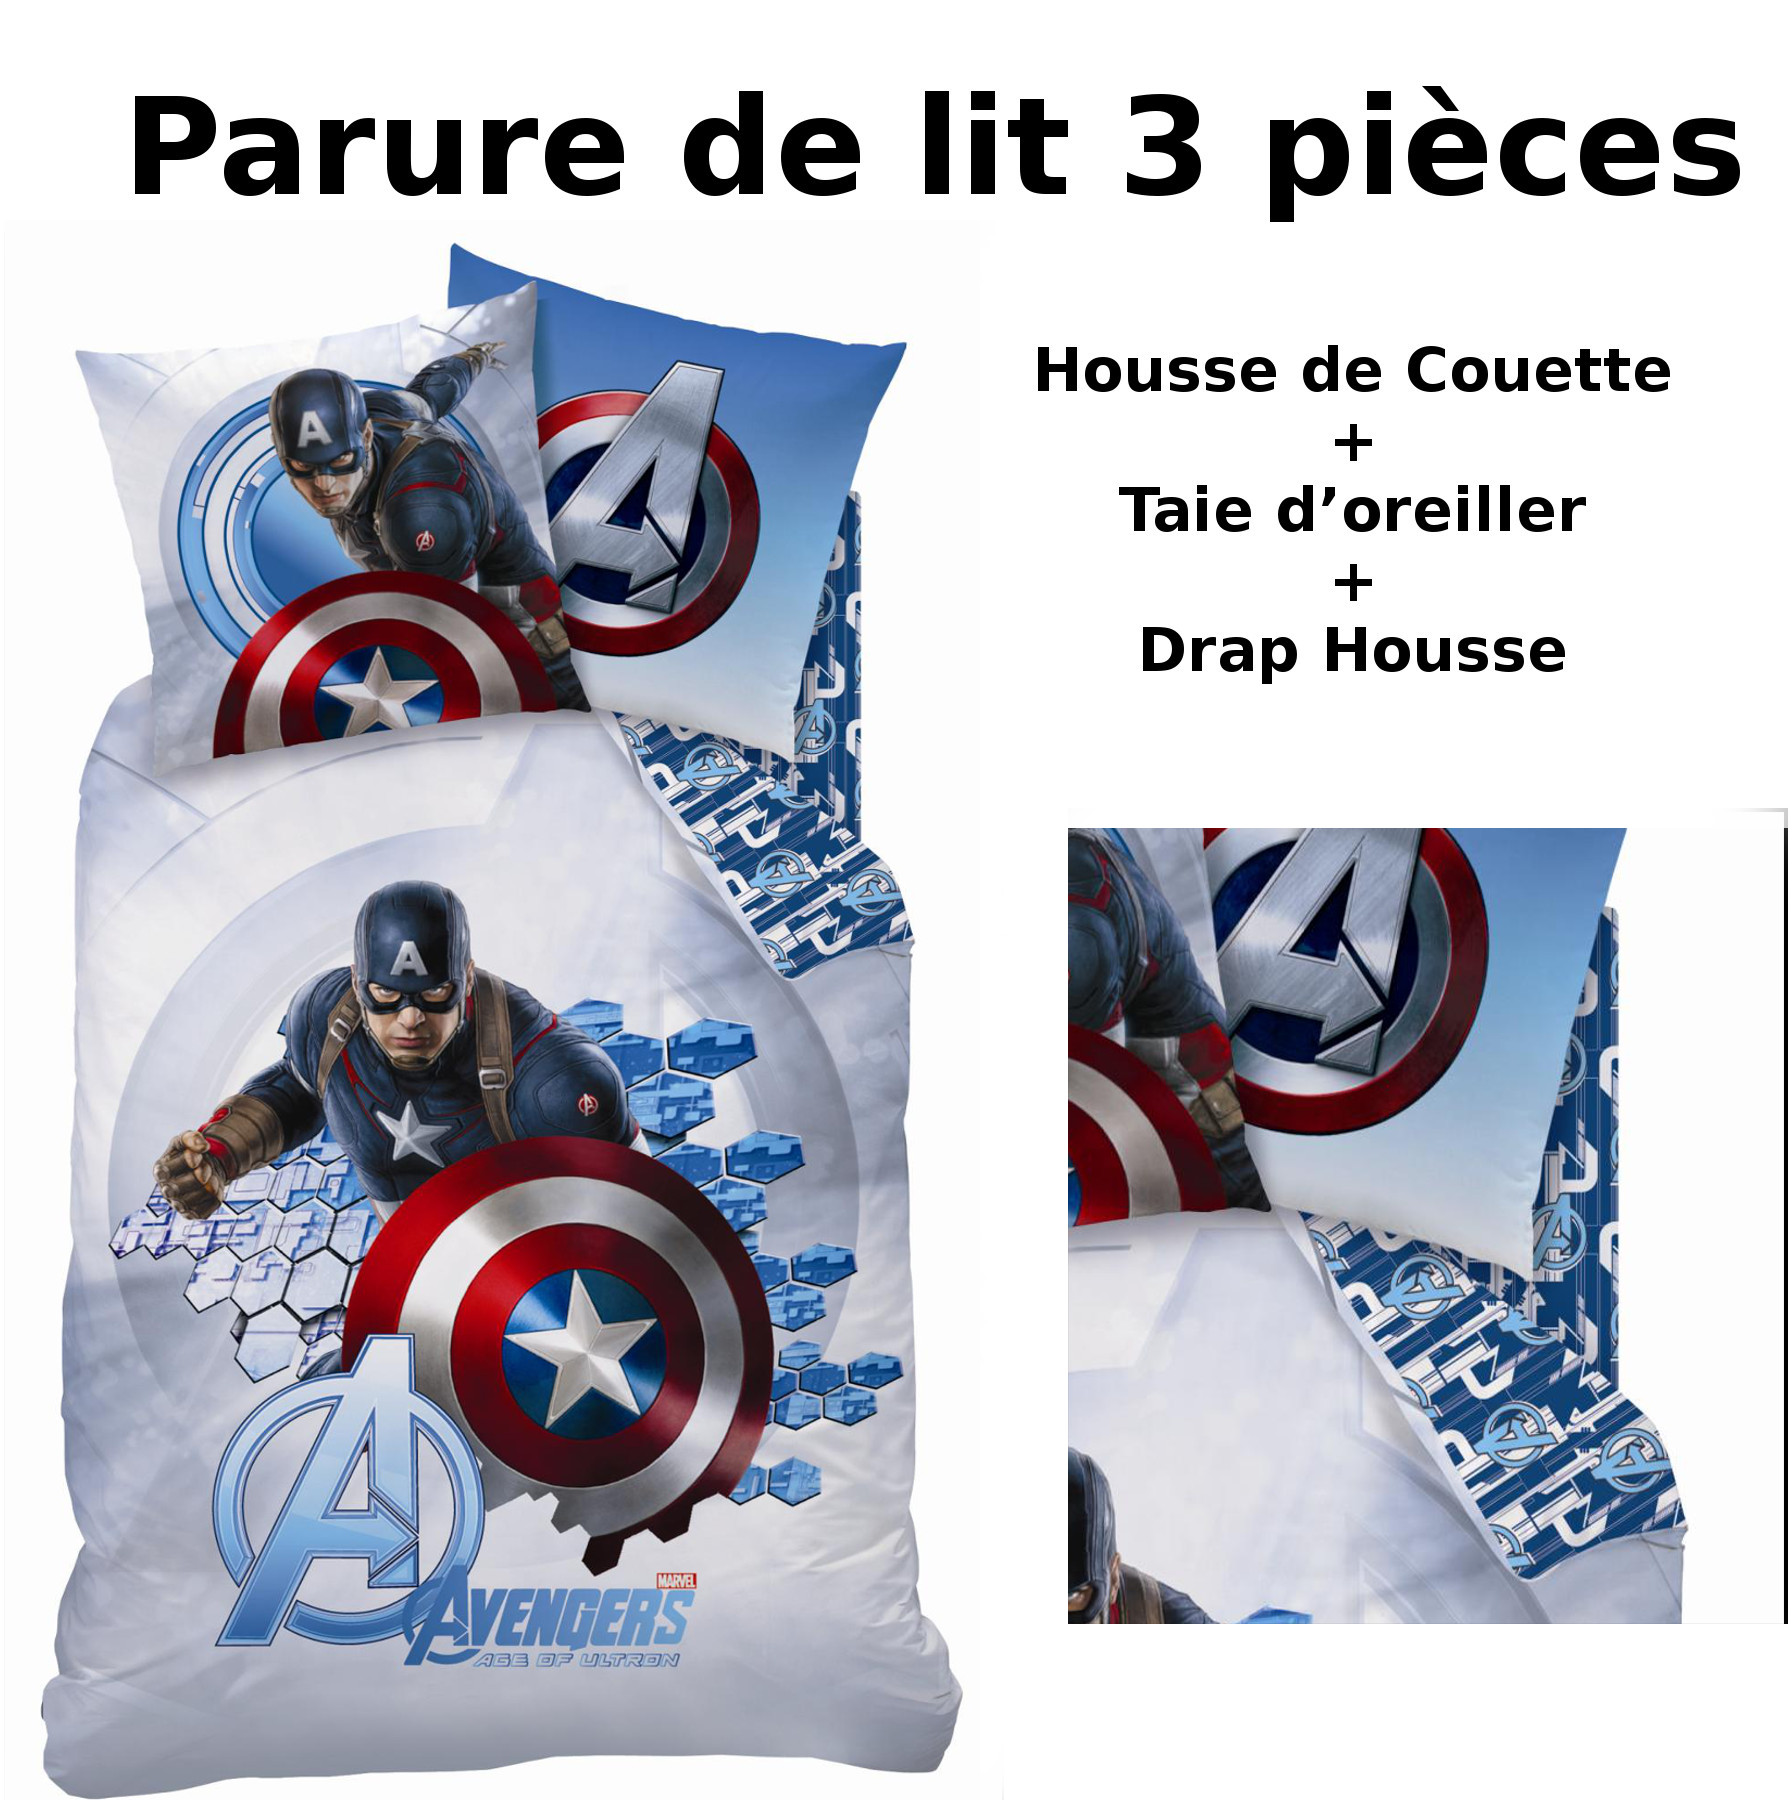 avengers parure de lit 3pcs housse de couette taie d 39 oreiller drap housse captain. Black Bedroom Furniture Sets. Home Design Ideas